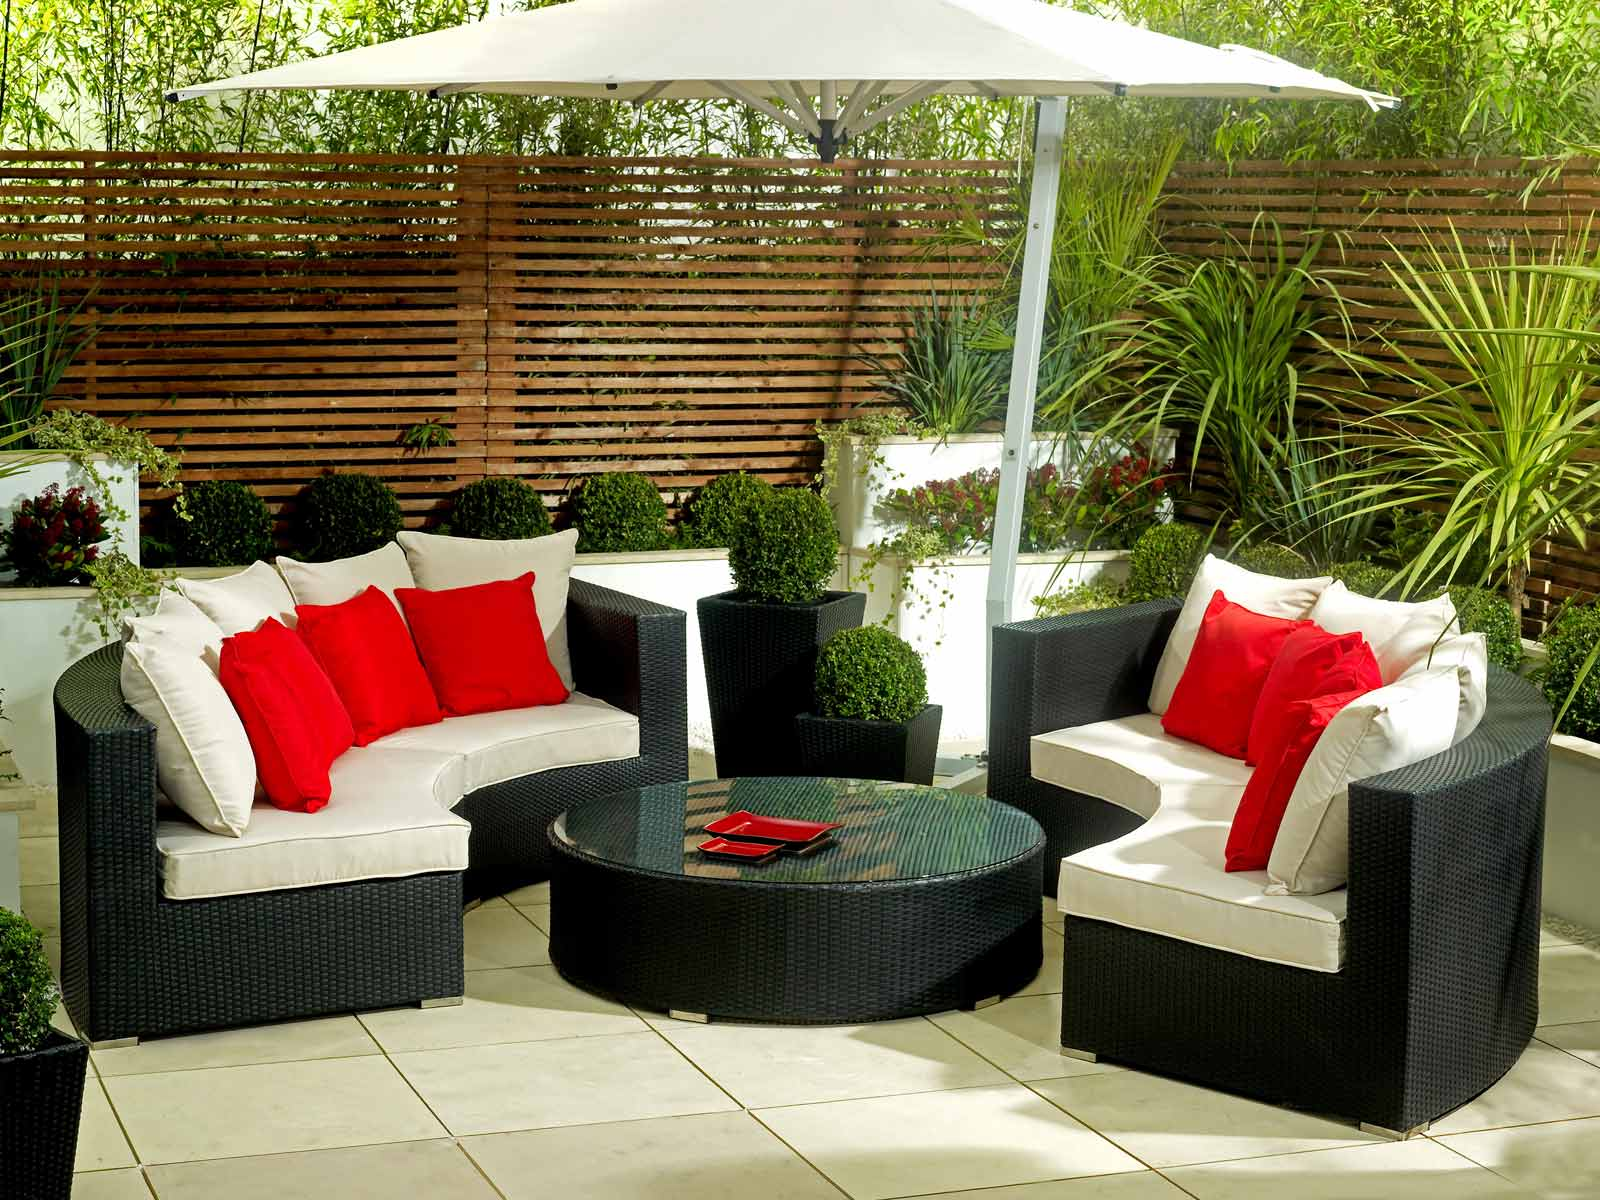 Garden Furniture   KEKO FURNITURE. Furniture Store Sweet Home furniture stores   garden furniture